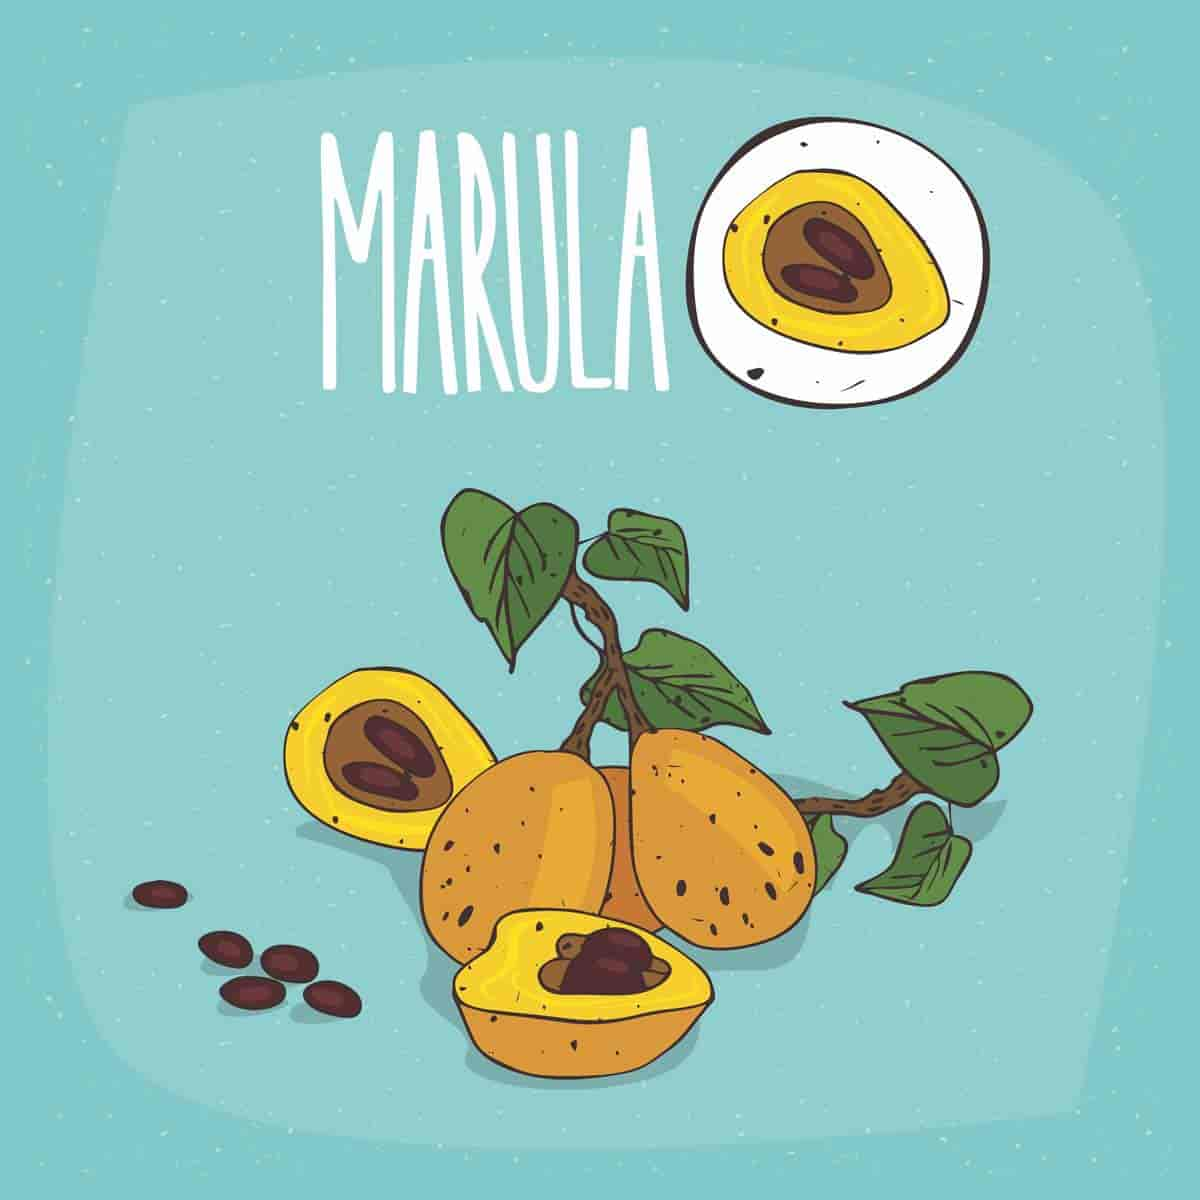 benefits of marula oil